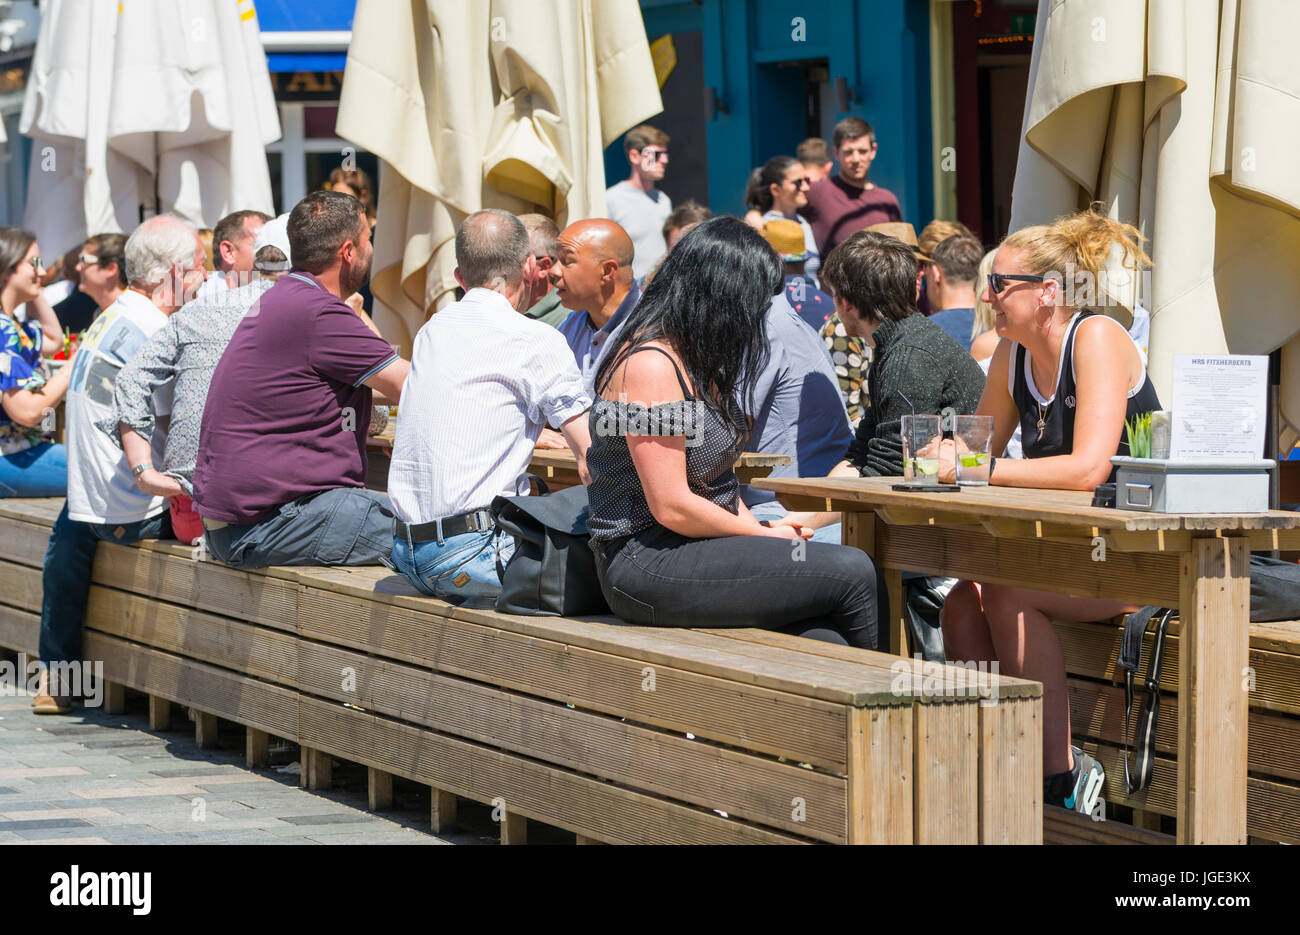 People sitting outside on wooden tables and benches at a cafe and bar on a hot day in Summer. - Stock Image